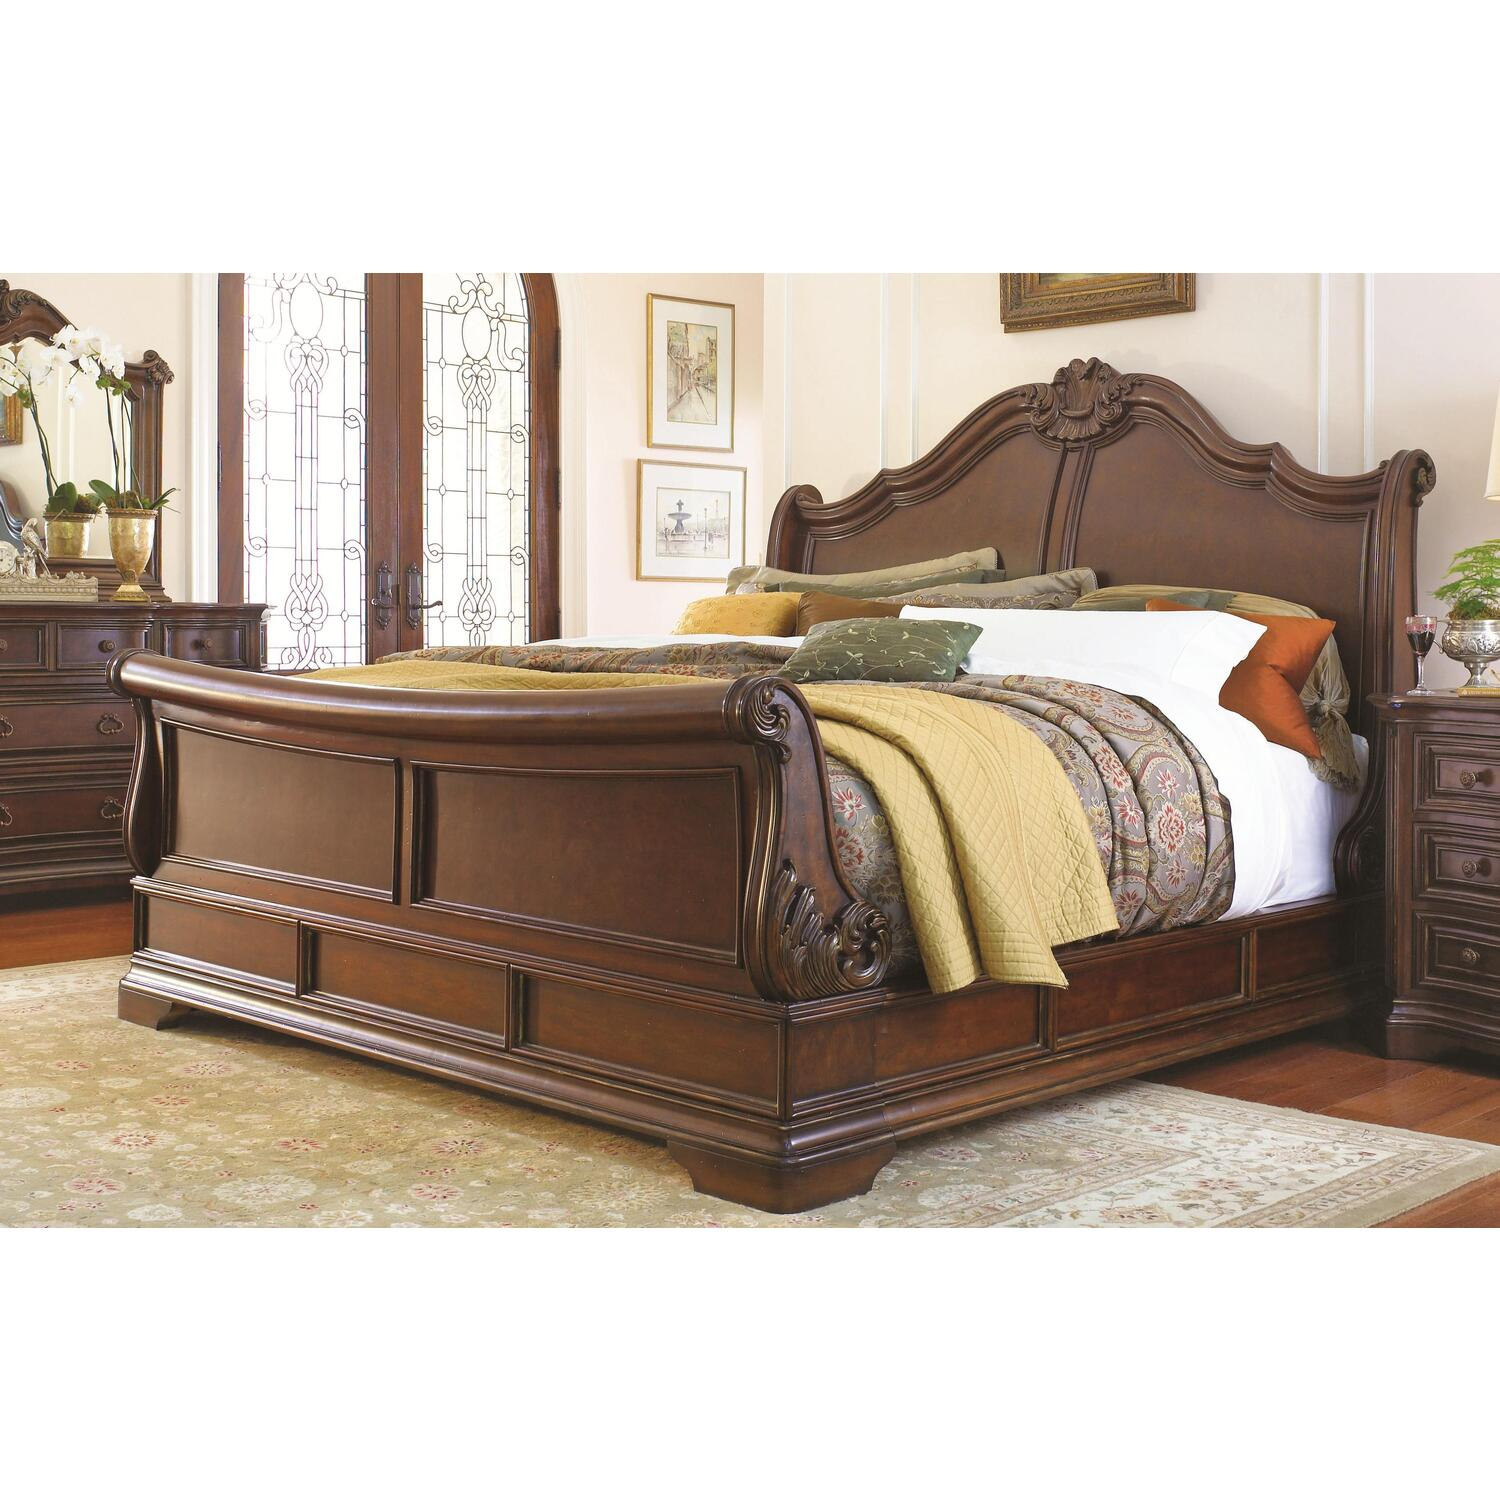 Universal Furniture Casa Verona California King Sleigh Bed ...